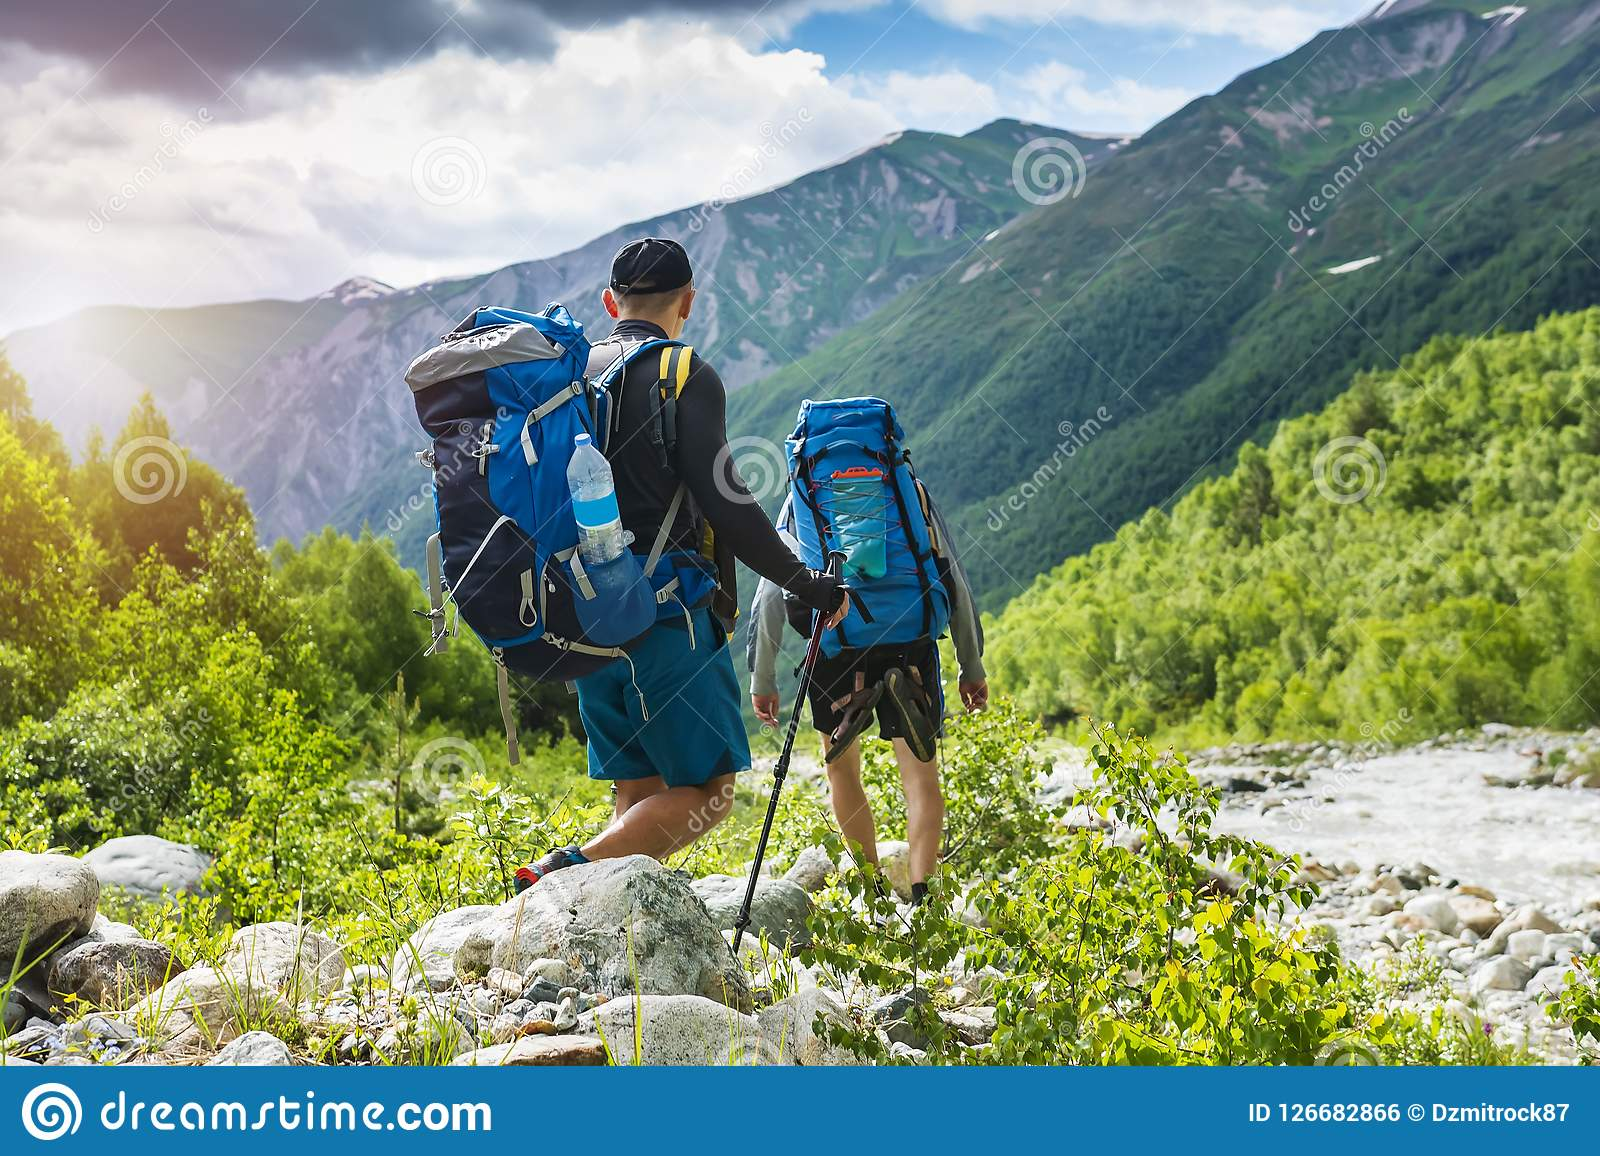 Trekking in mountains. Mountain hiking. Tourists with backpacks hike on rocky way near river. Wild nature with beautiful views.